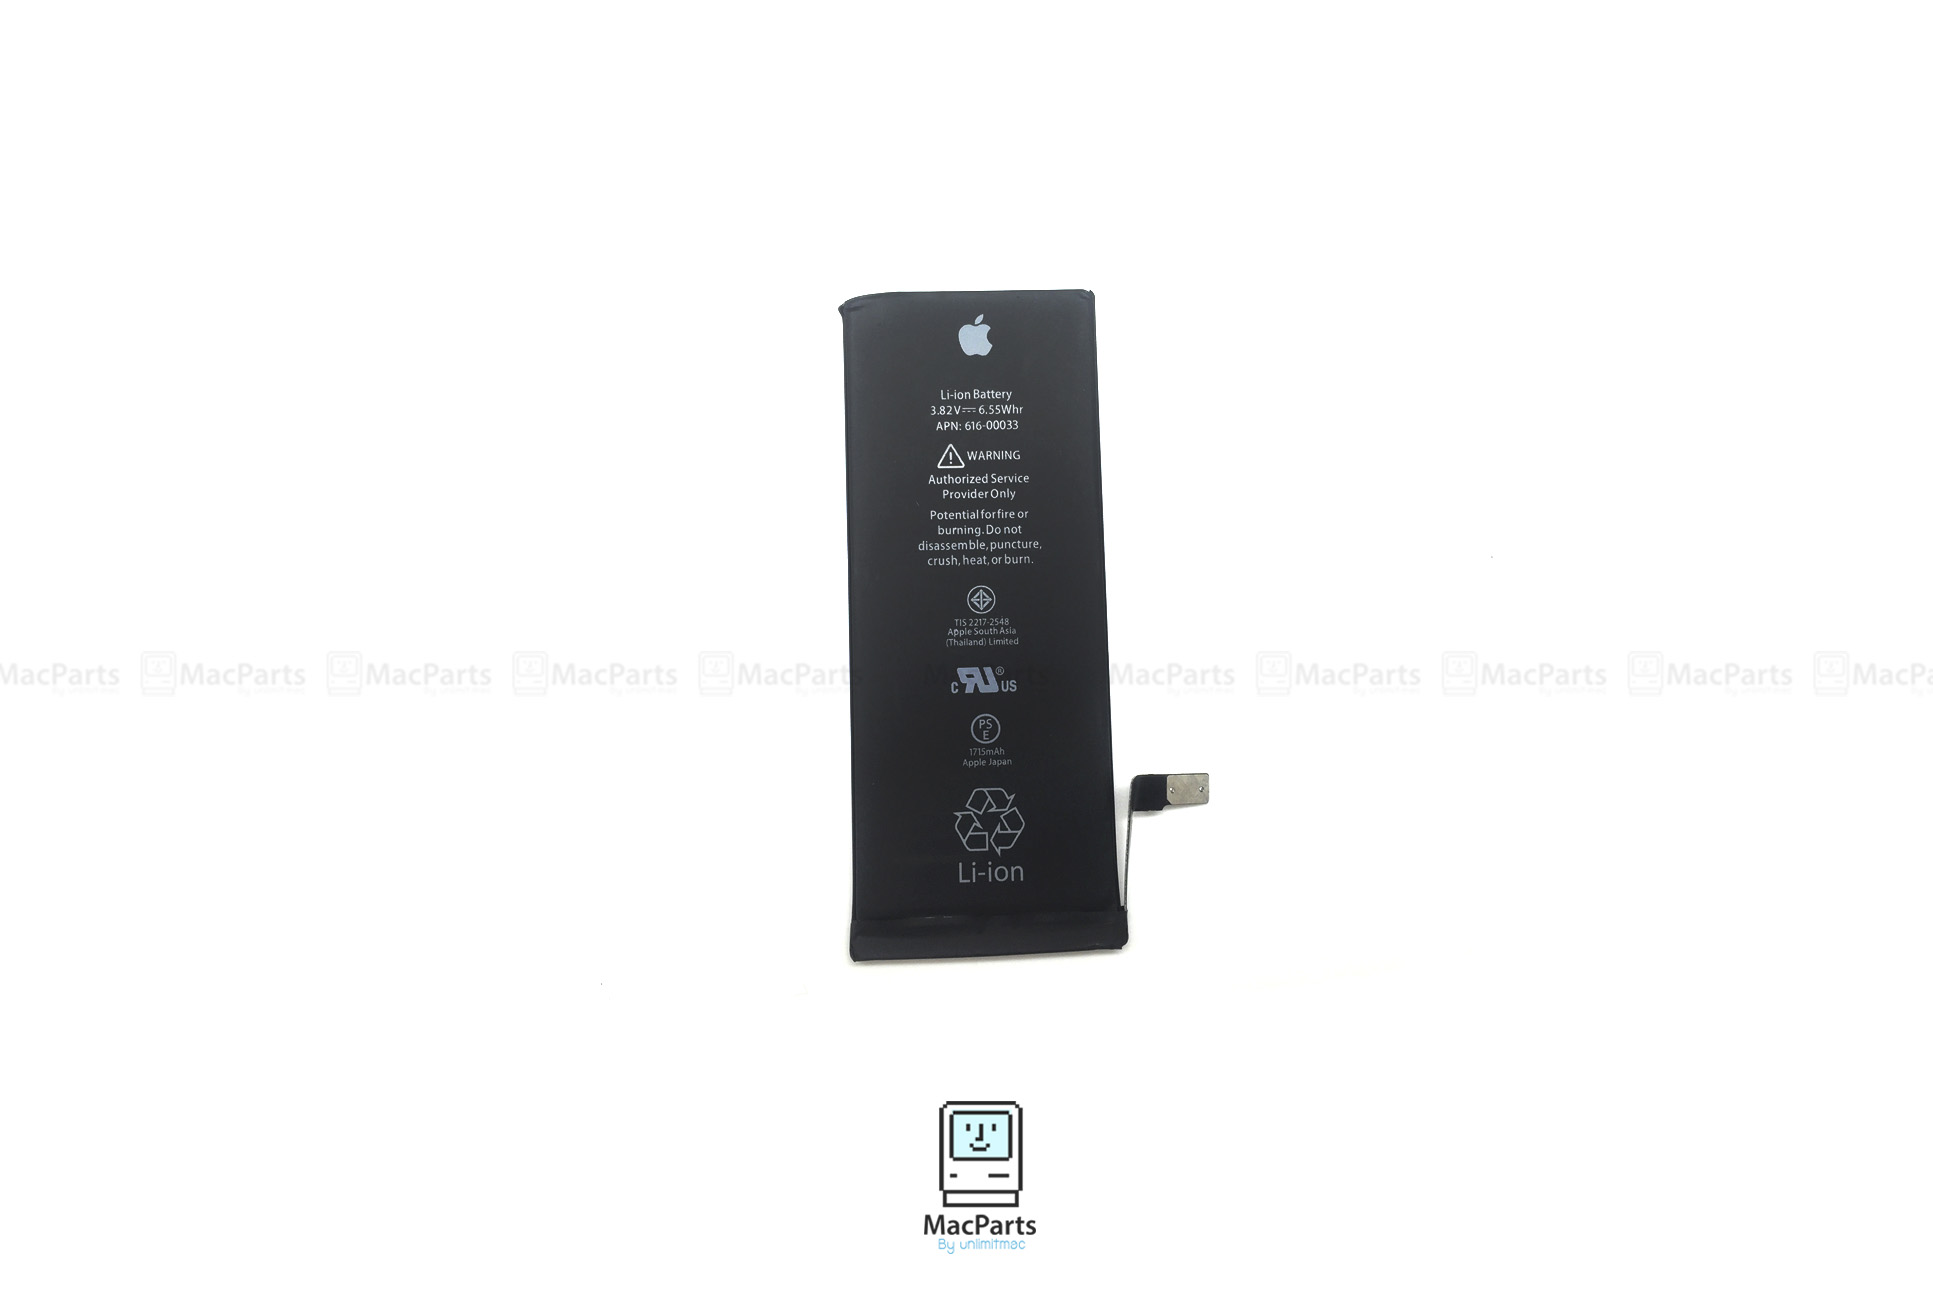 616-00033 Battery For iPhone 6S,แบตเตอรี่ไอโฟน 6S